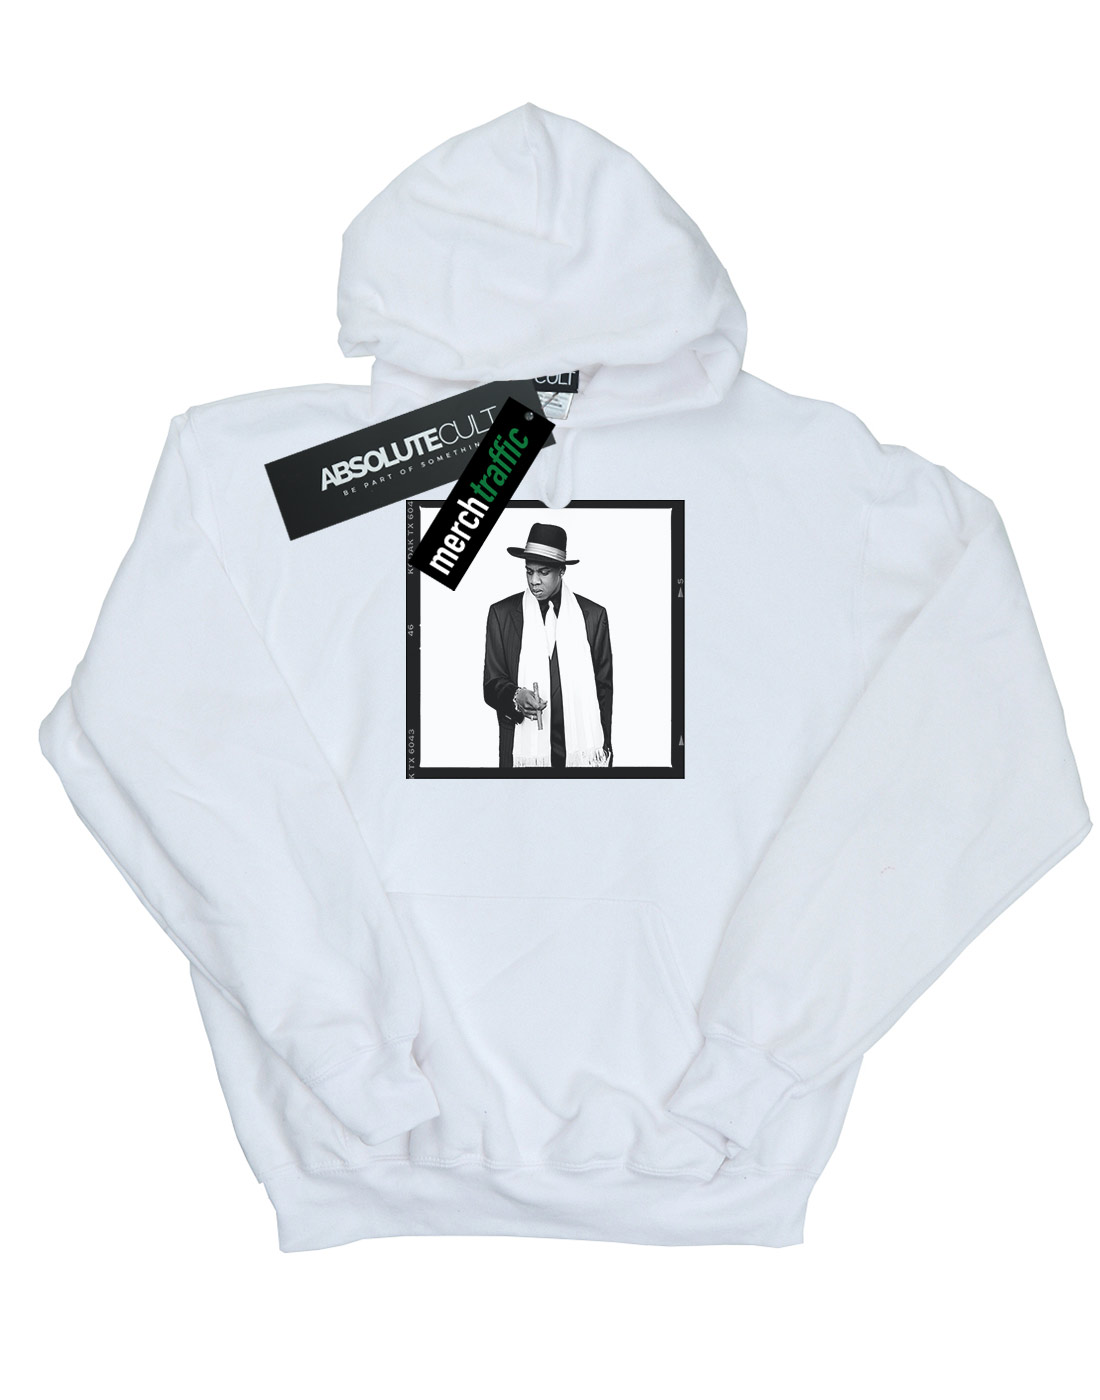 7a0c4c5cecdd3 Details about Jay Z Men's Reasonable Doubt Cigar Hoodie